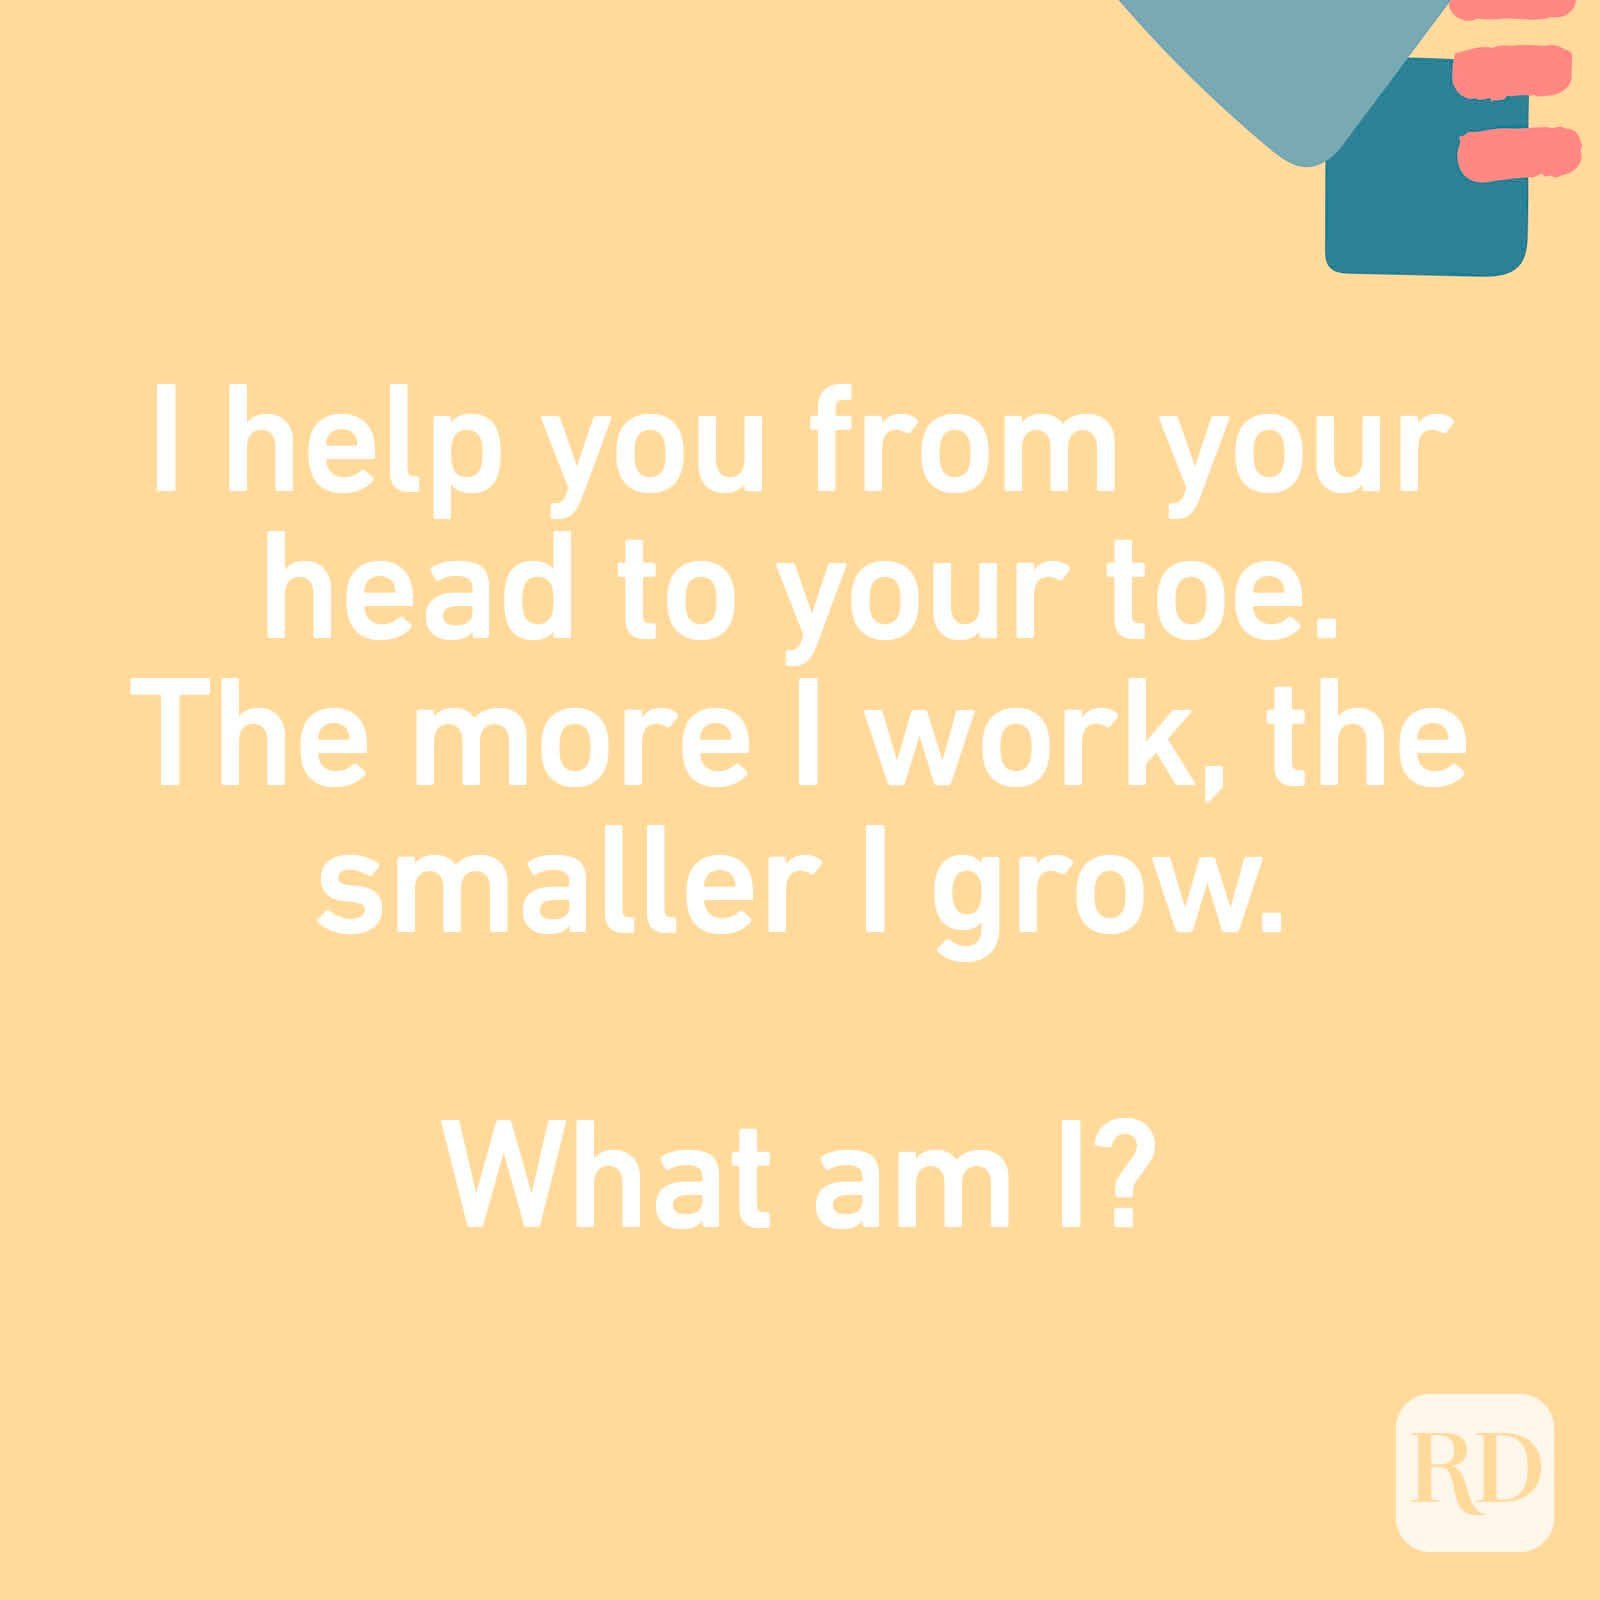 I help you from your head to your toe. The more I work, the smaller I grow. What am I?